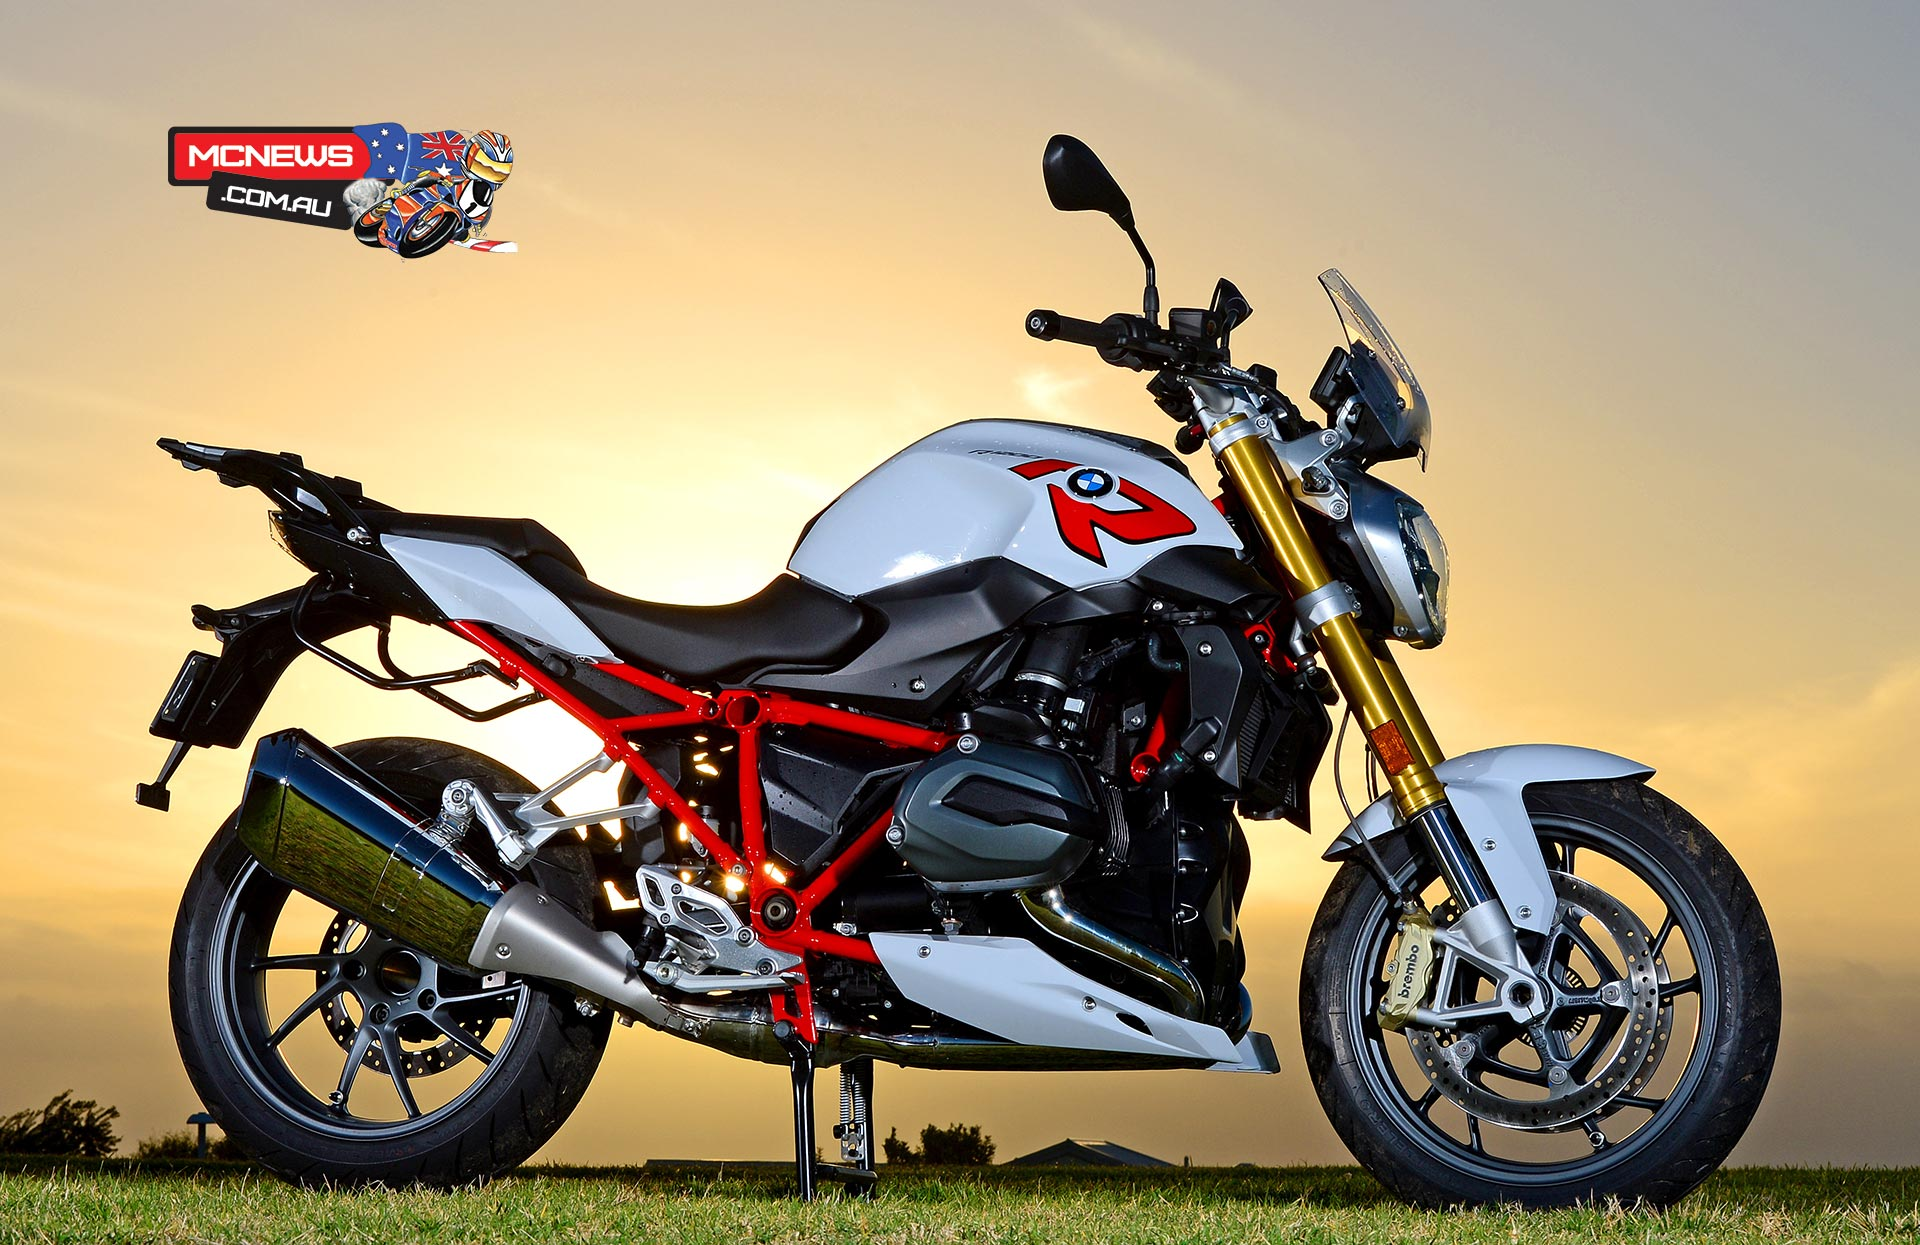 Bmw R 1200 R Review Mcnews Com Au